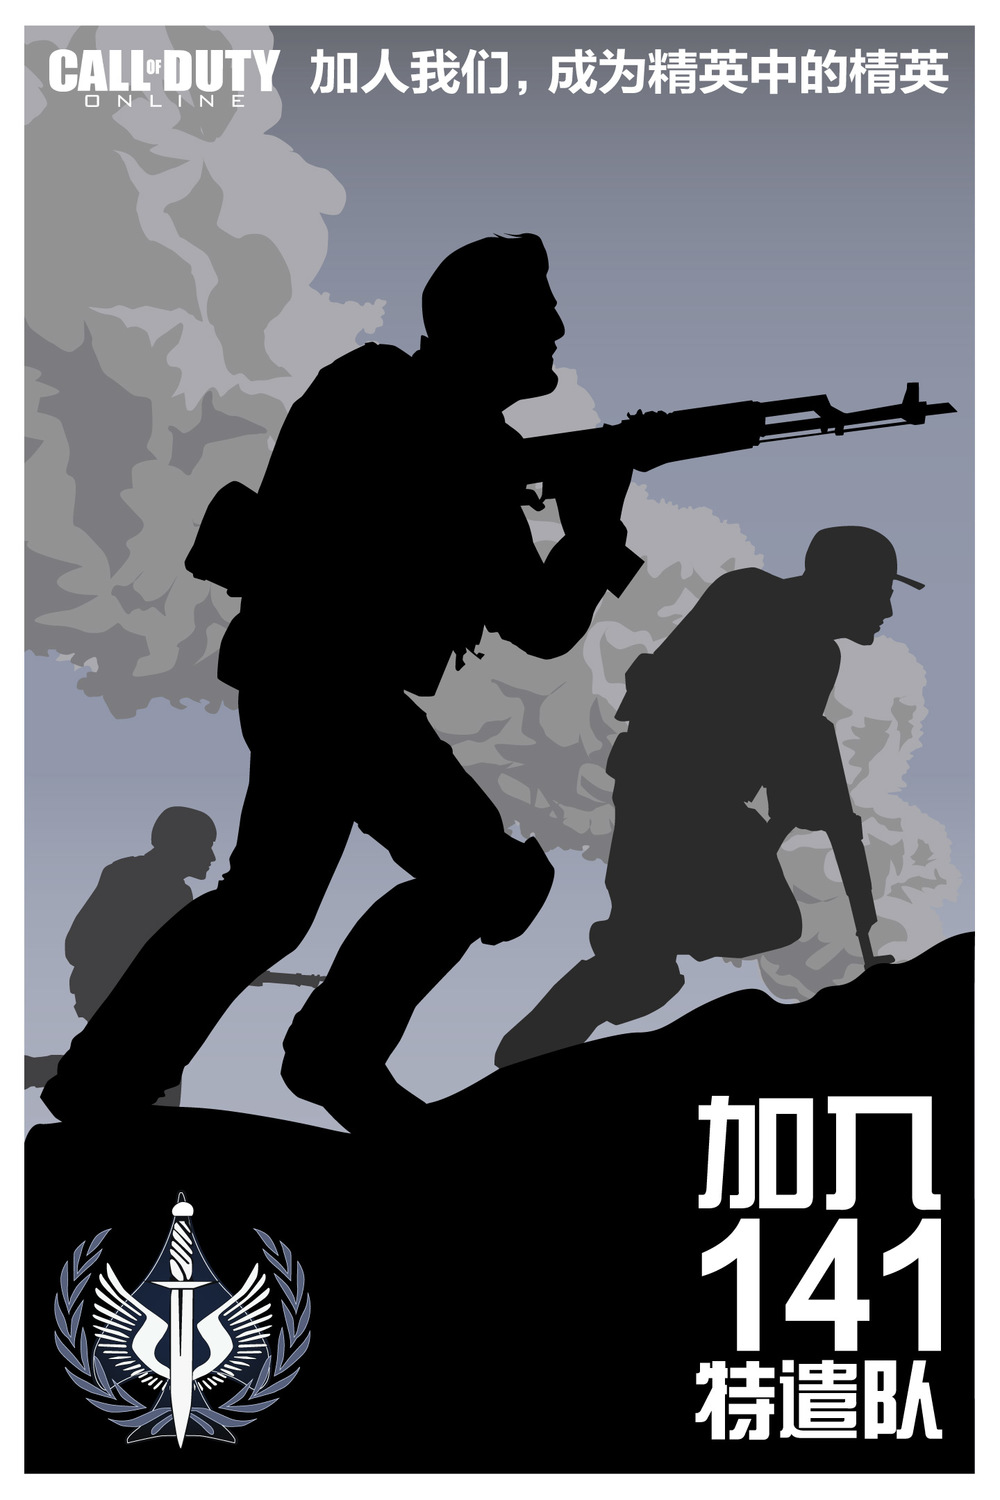 """""""TF 141 Advance"""" Call of Duty Online Poster"""